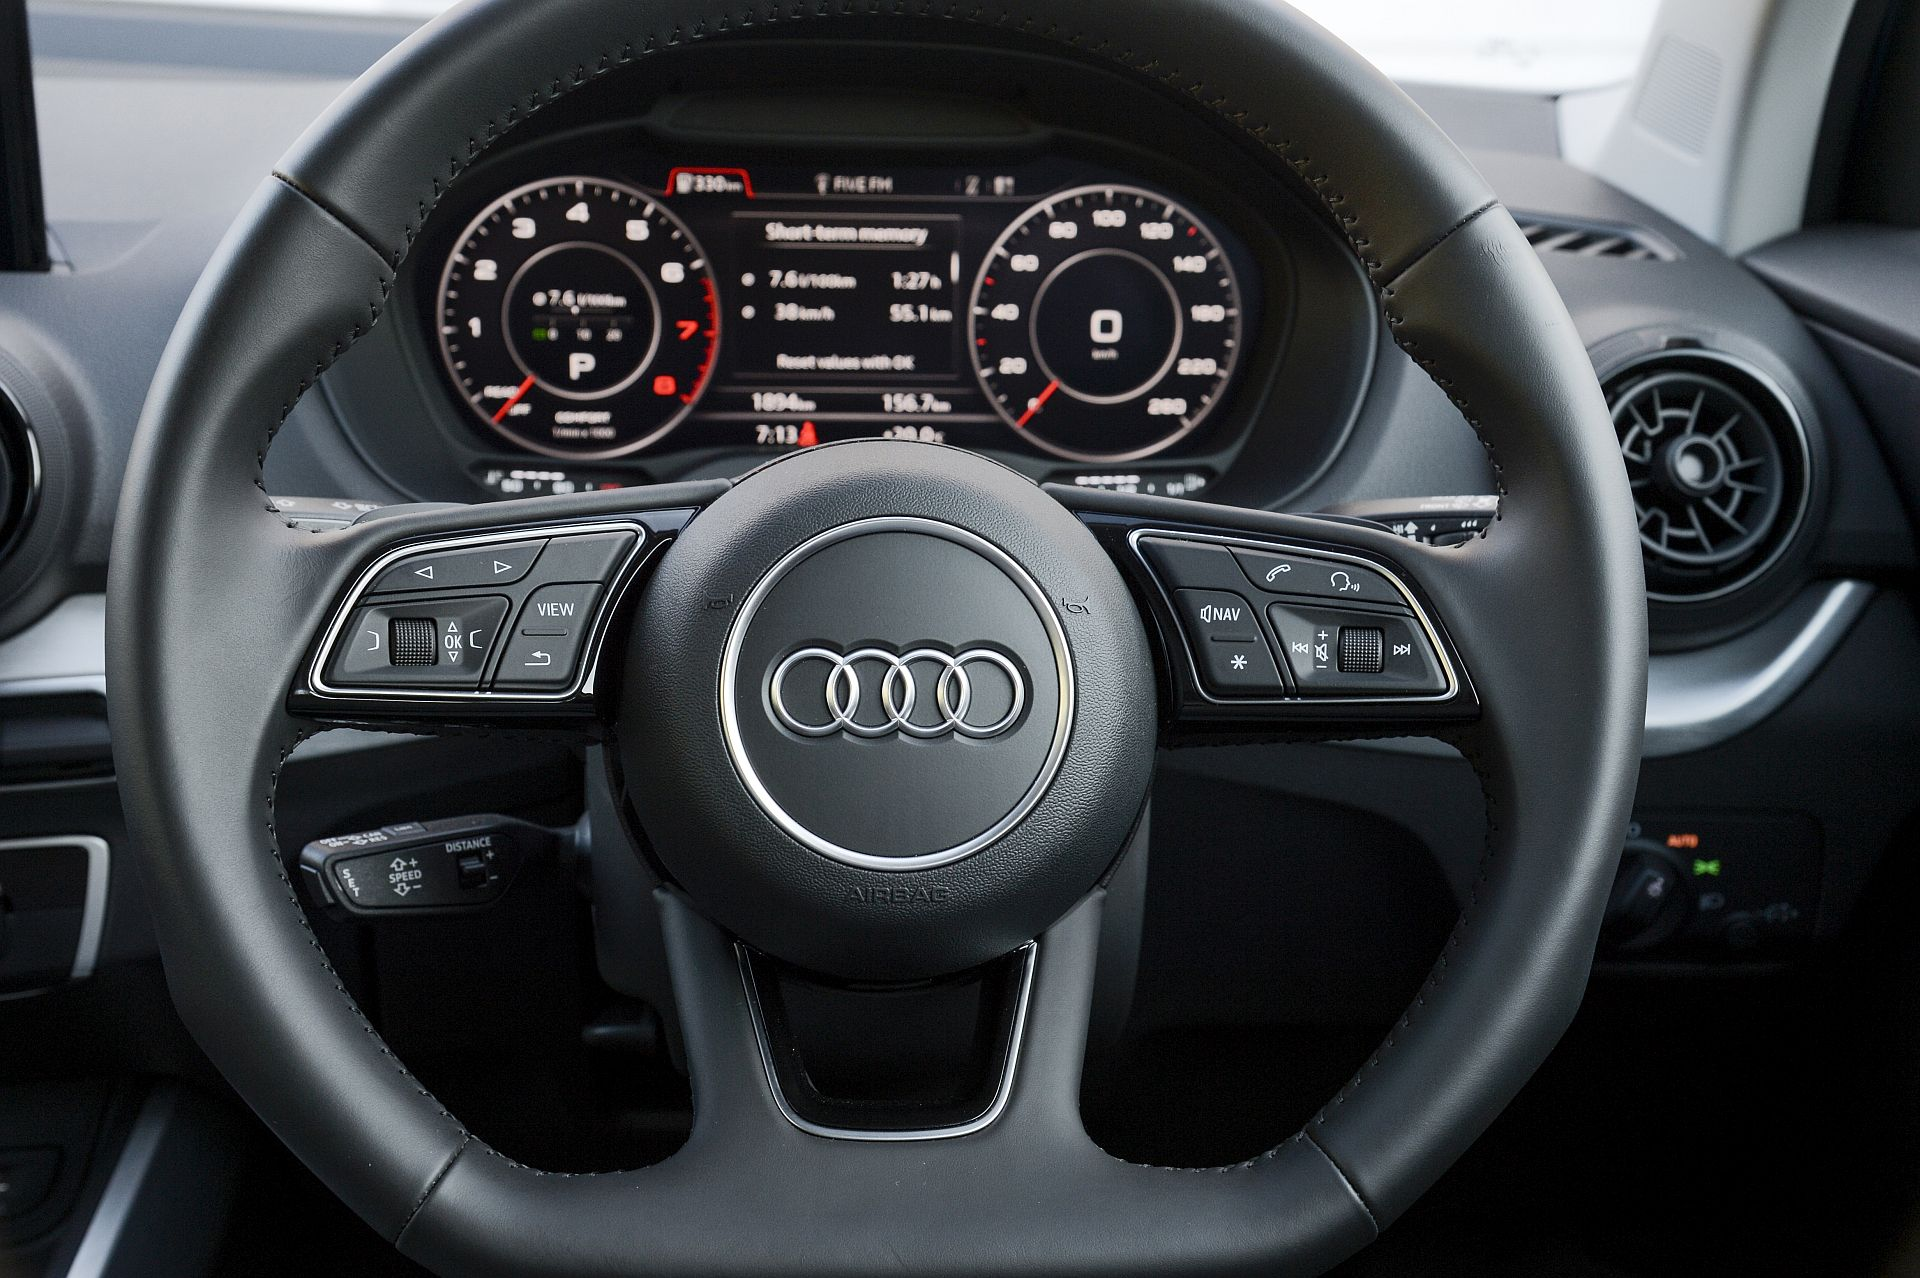 Audi says no 'manufacturing fault' found after Audi TT goes up in